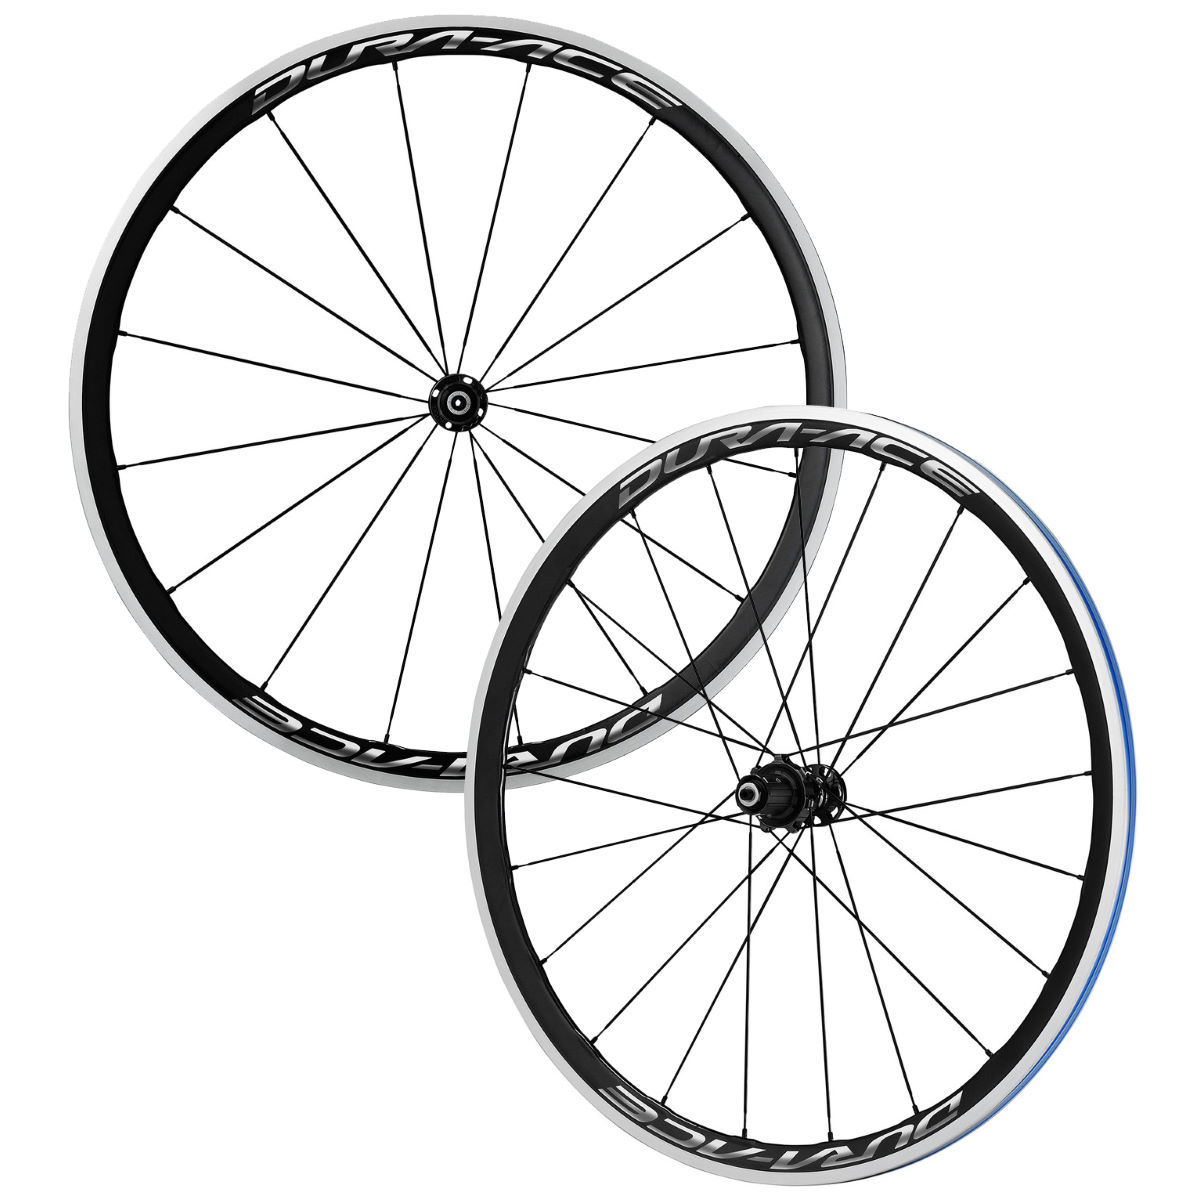 Shimano Dura Ace R9100 C40 Carbon Clincher Wheelset - Black